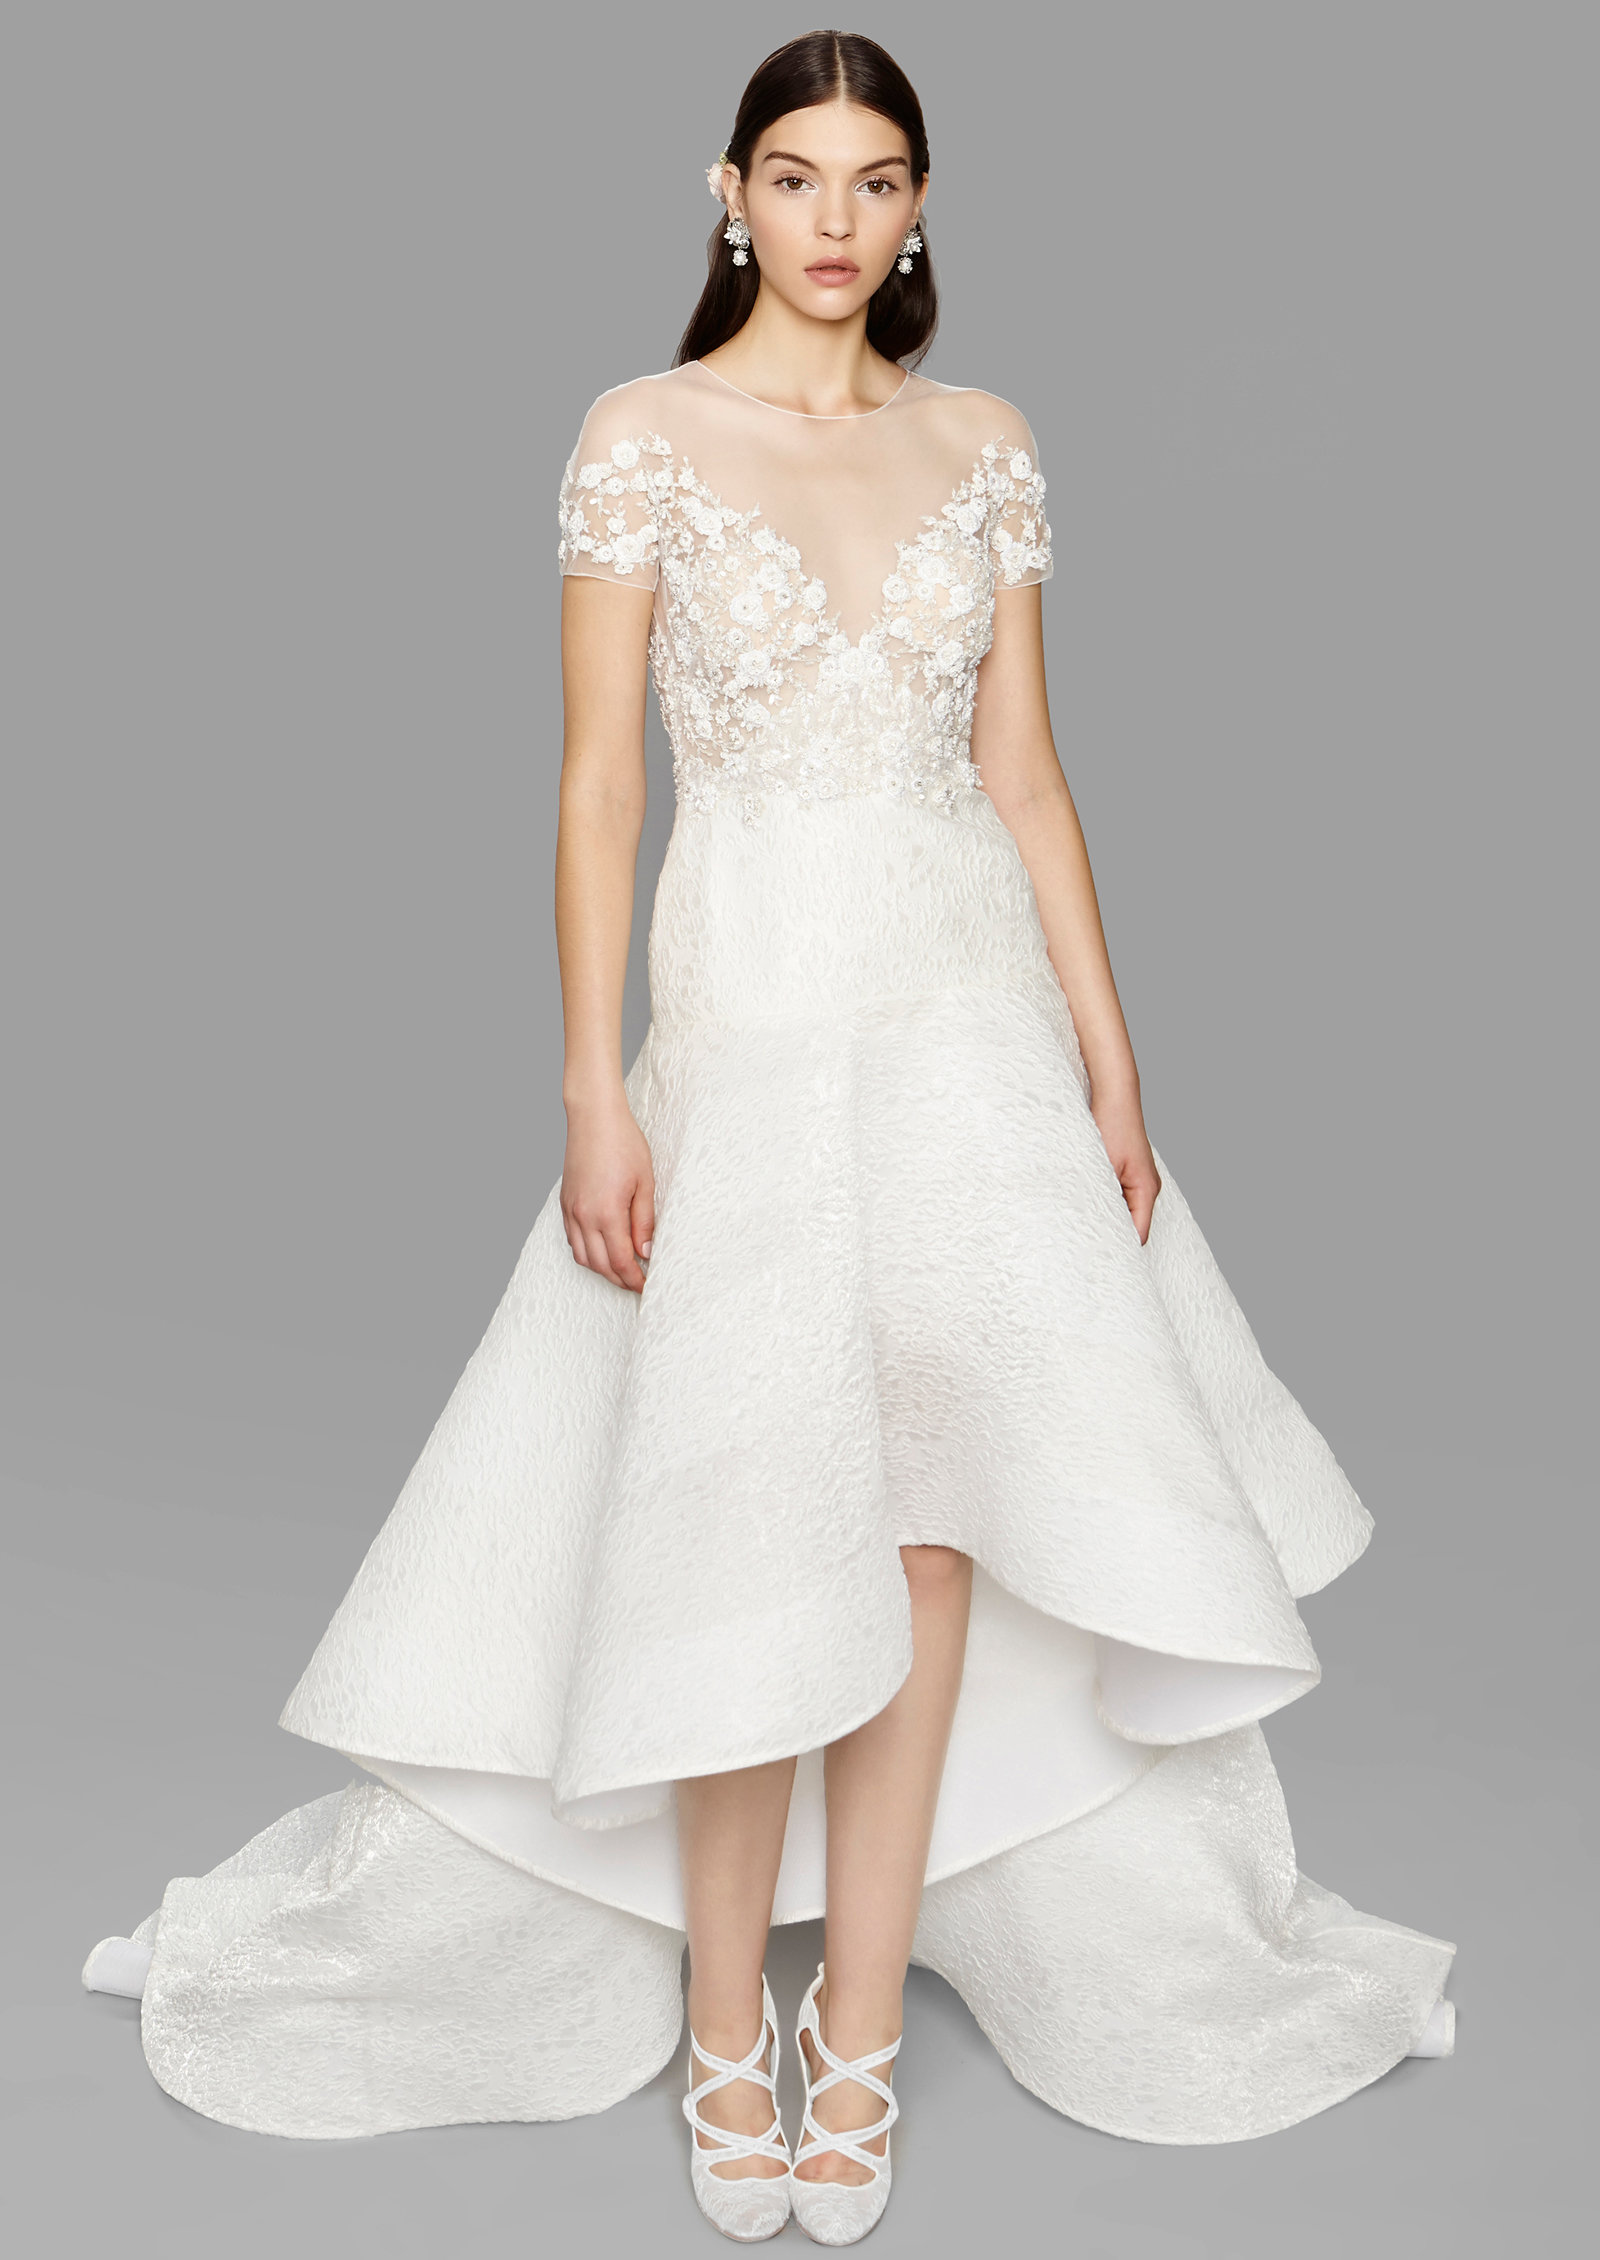 The Most Stunning Fall 2017 Wedding Dresses from Bridal Fashion